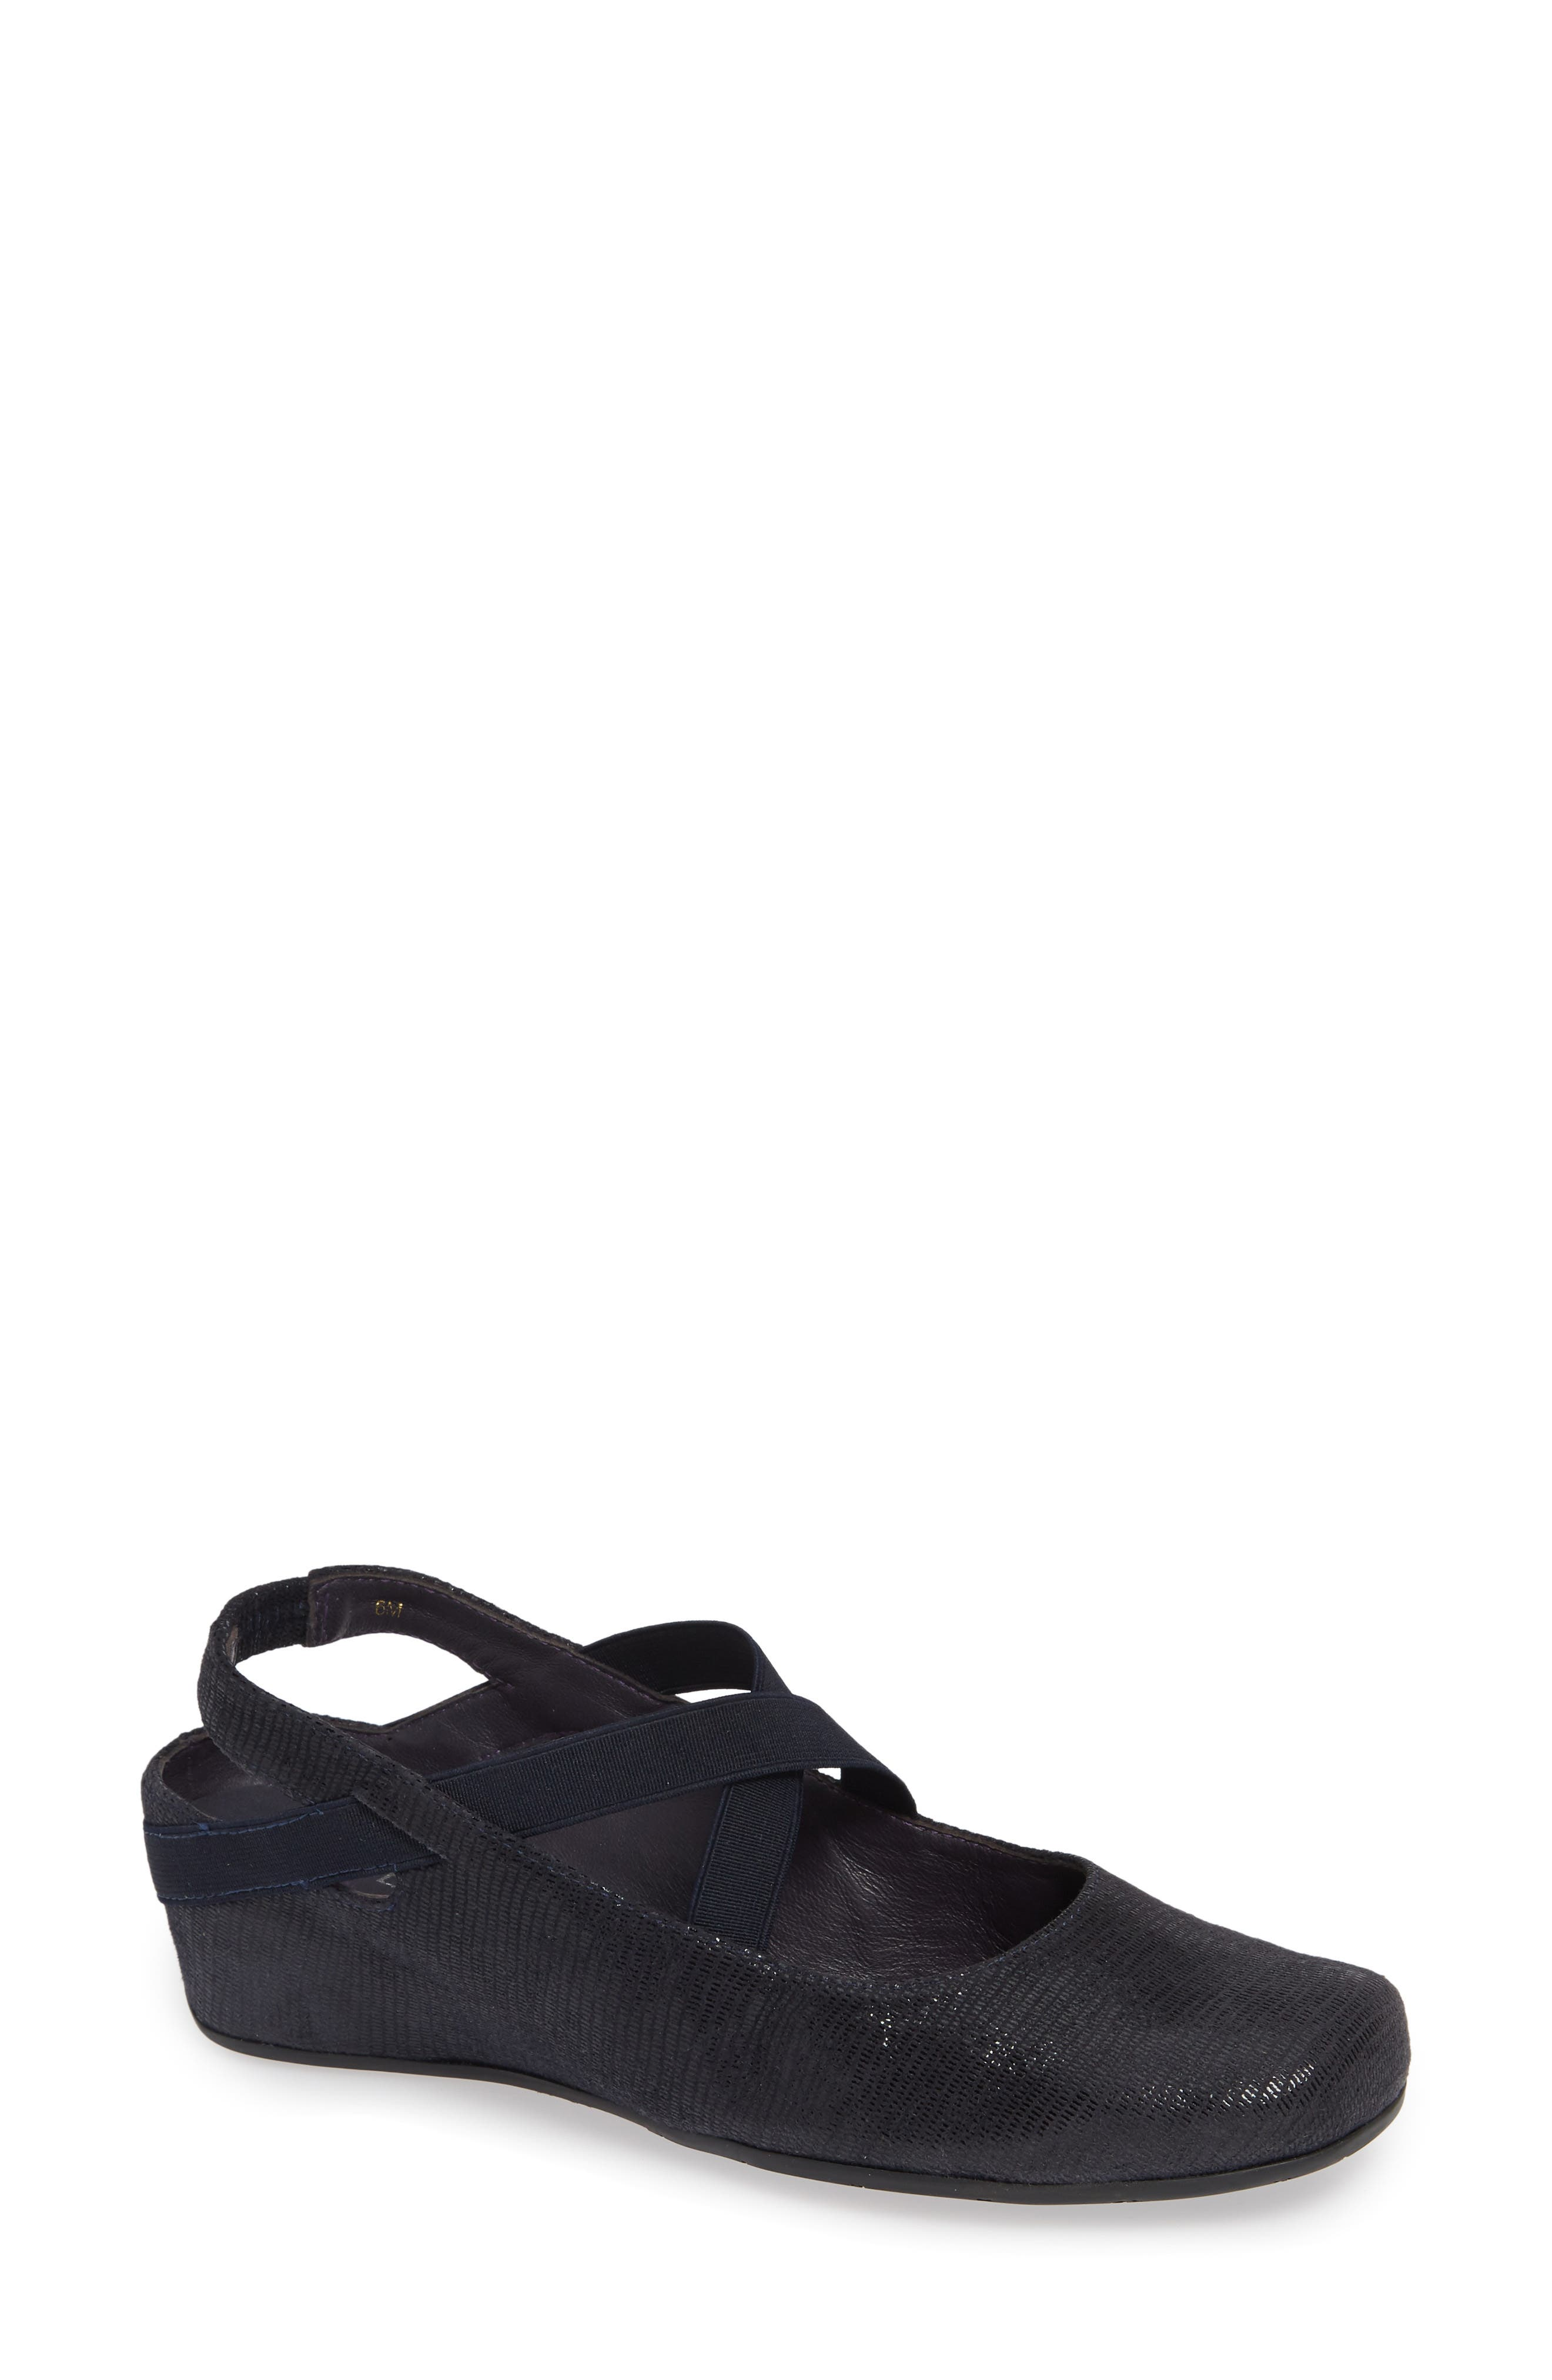 'Marjory' Wedge,                             Main thumbnail 1, color,                             NAVY LEATHER